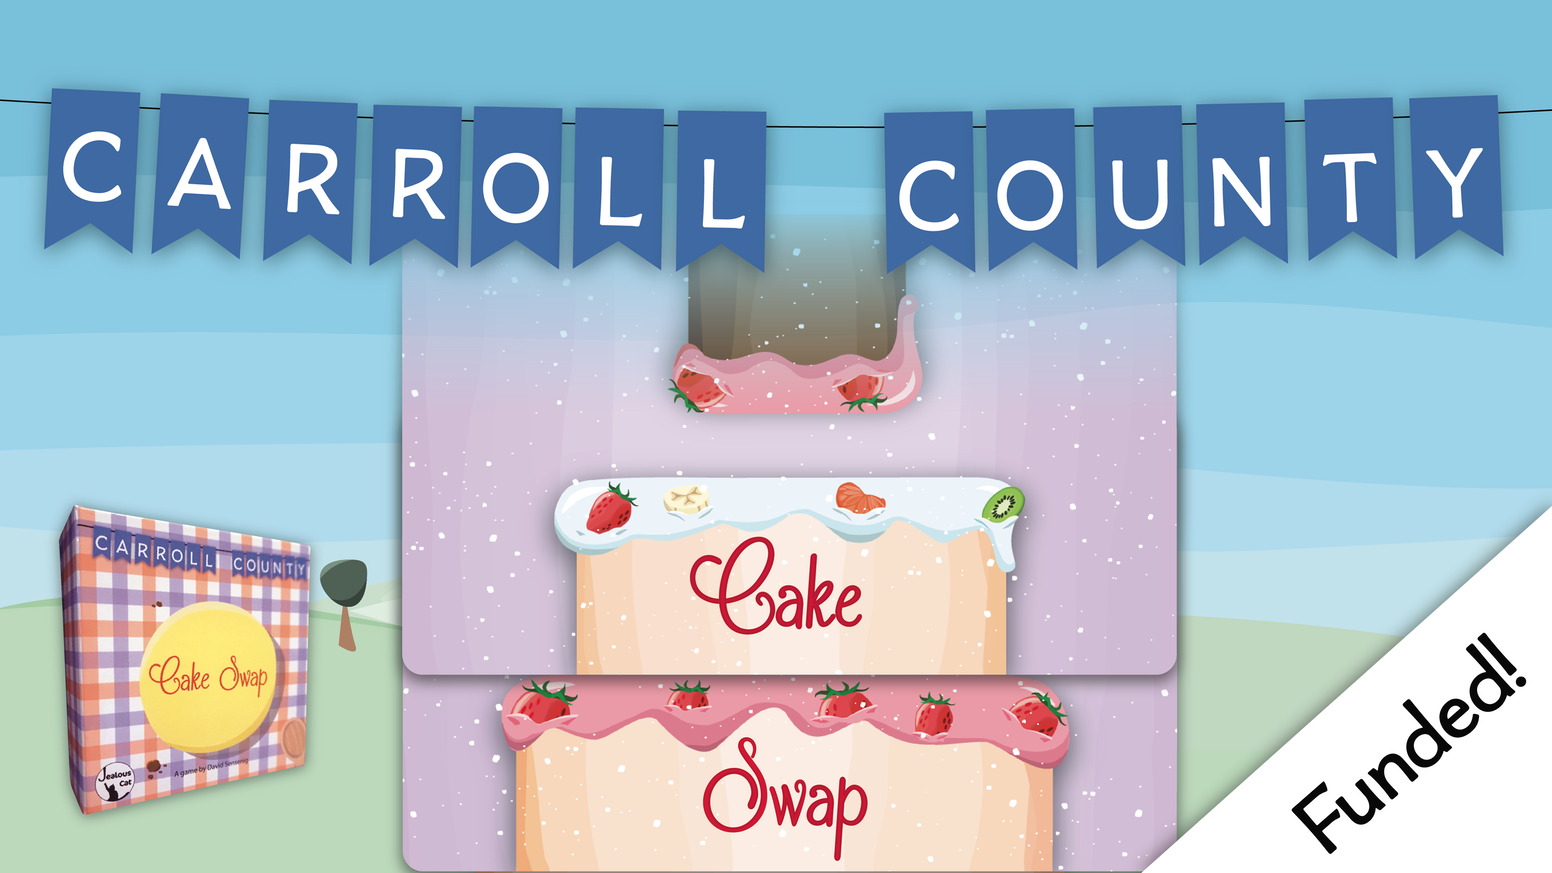 carroll county cake swap print and play by jealous cat games